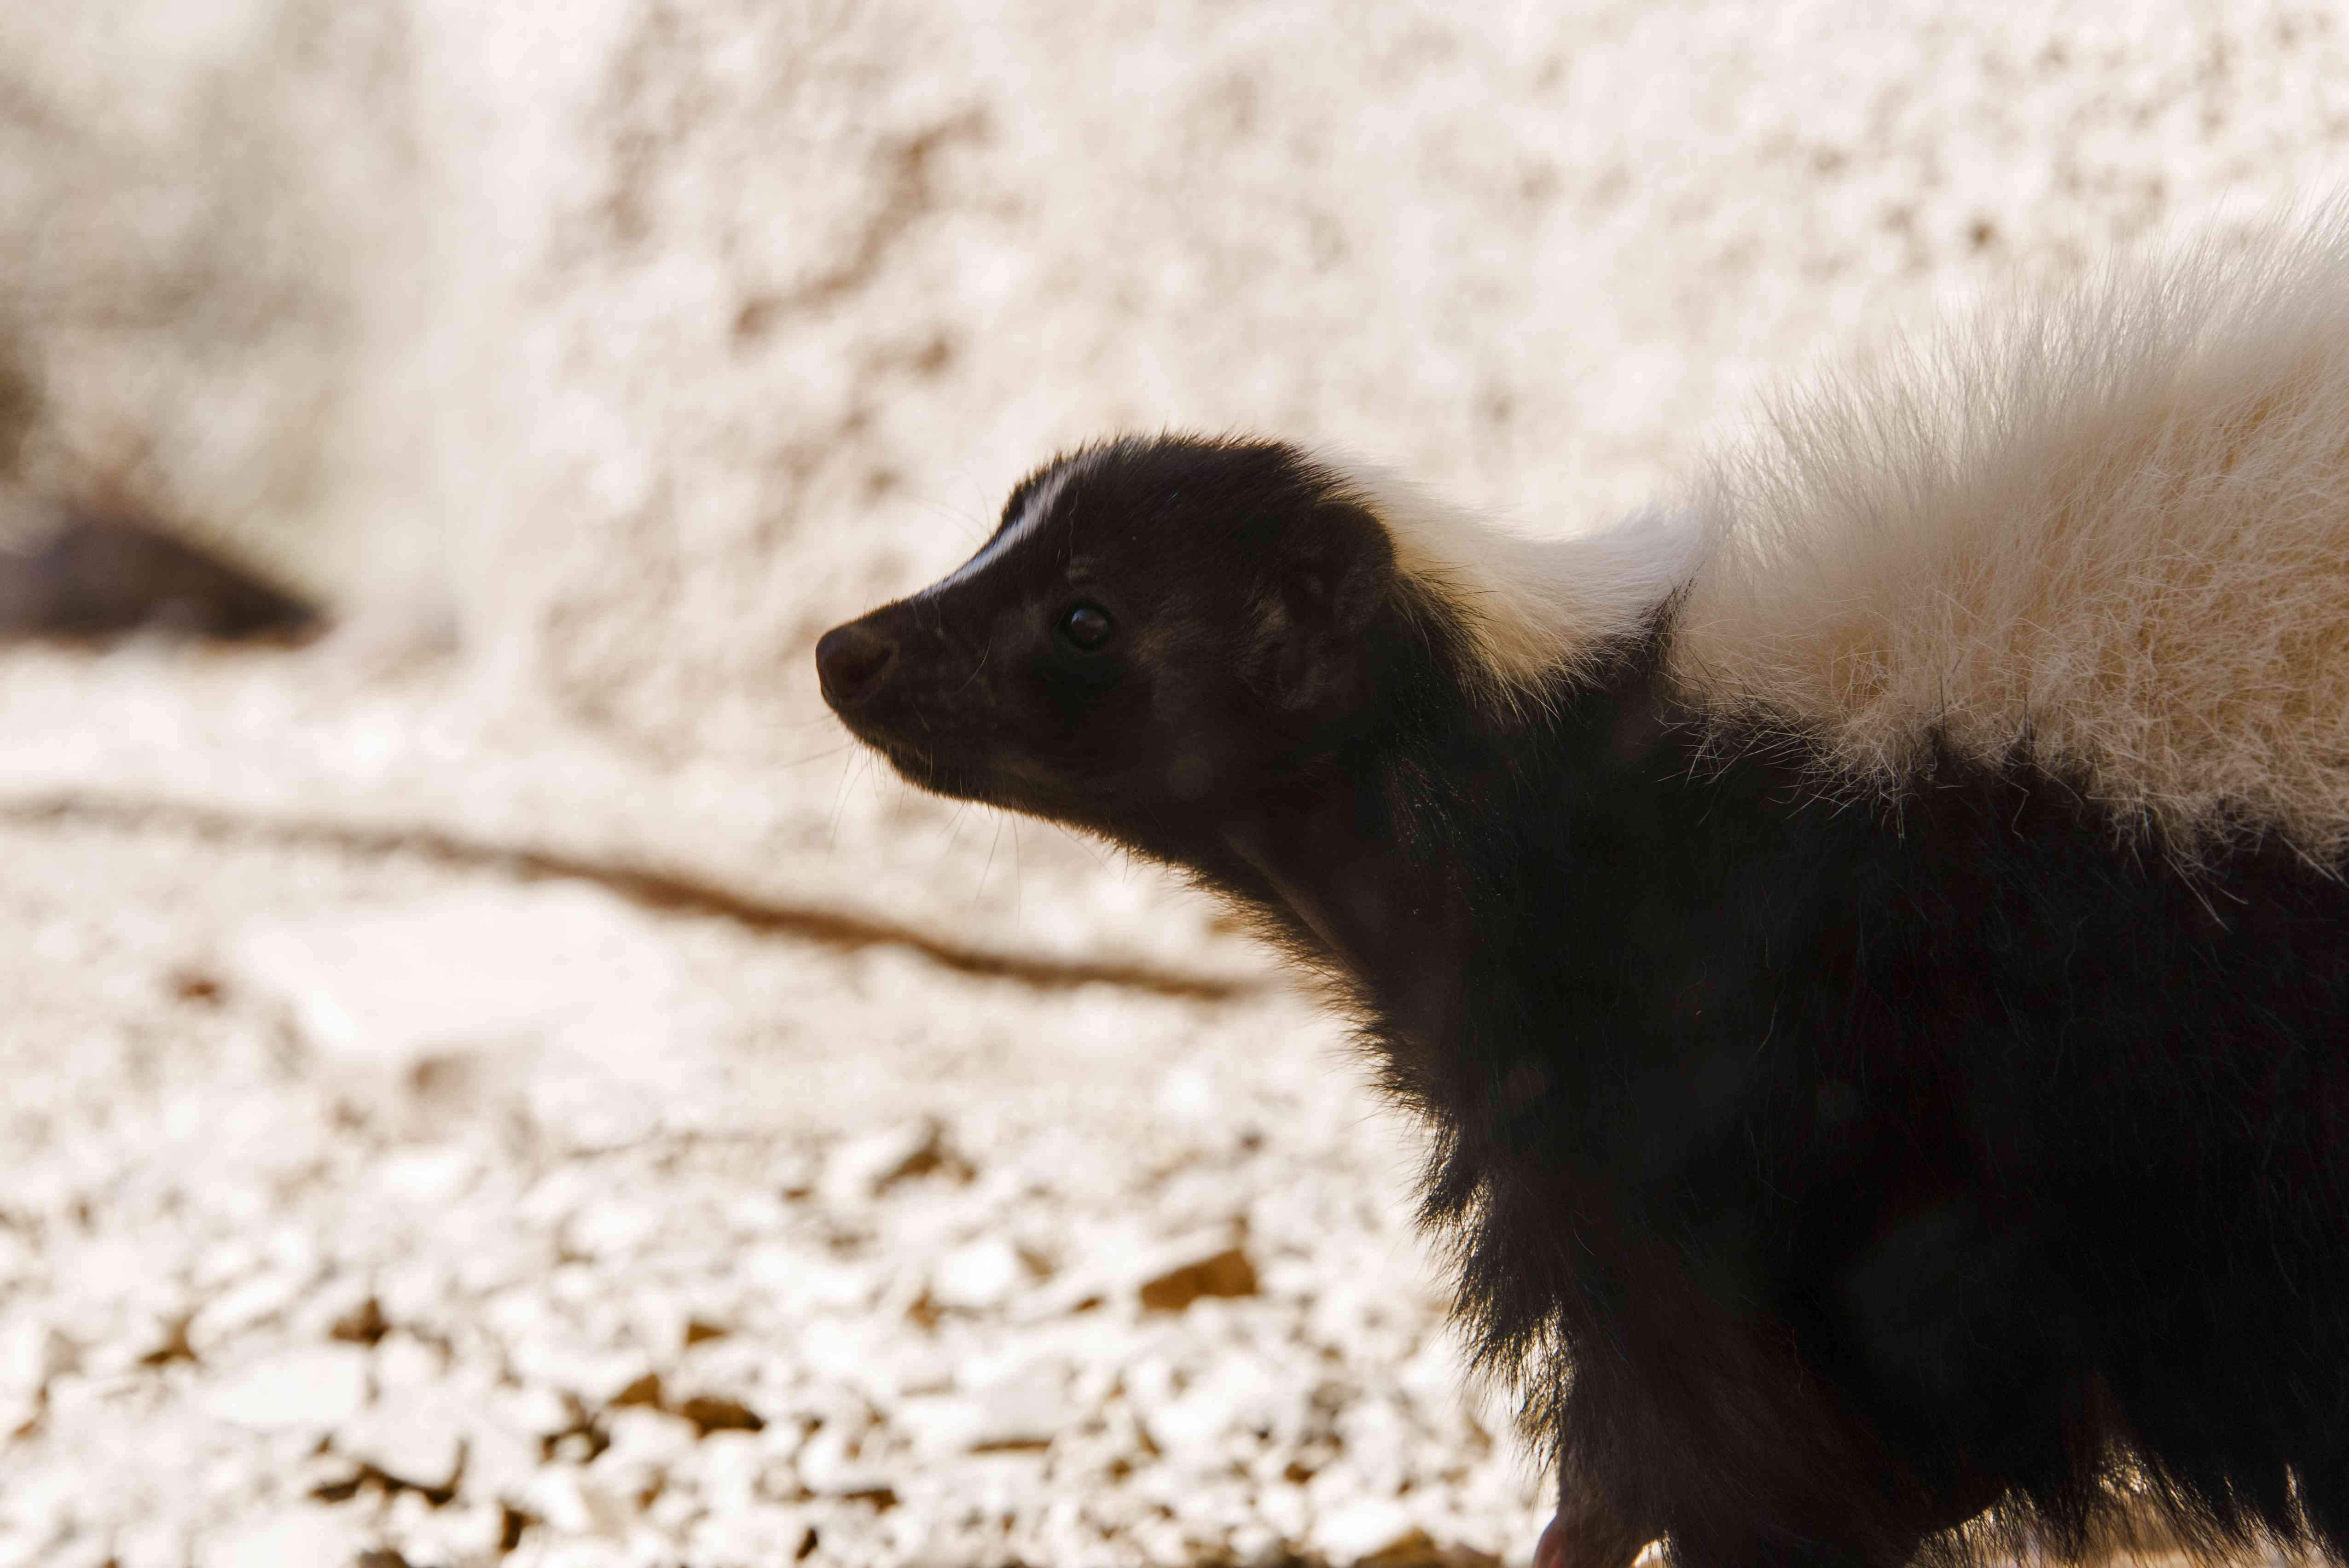 Close-up of a hooded skunk walking outside